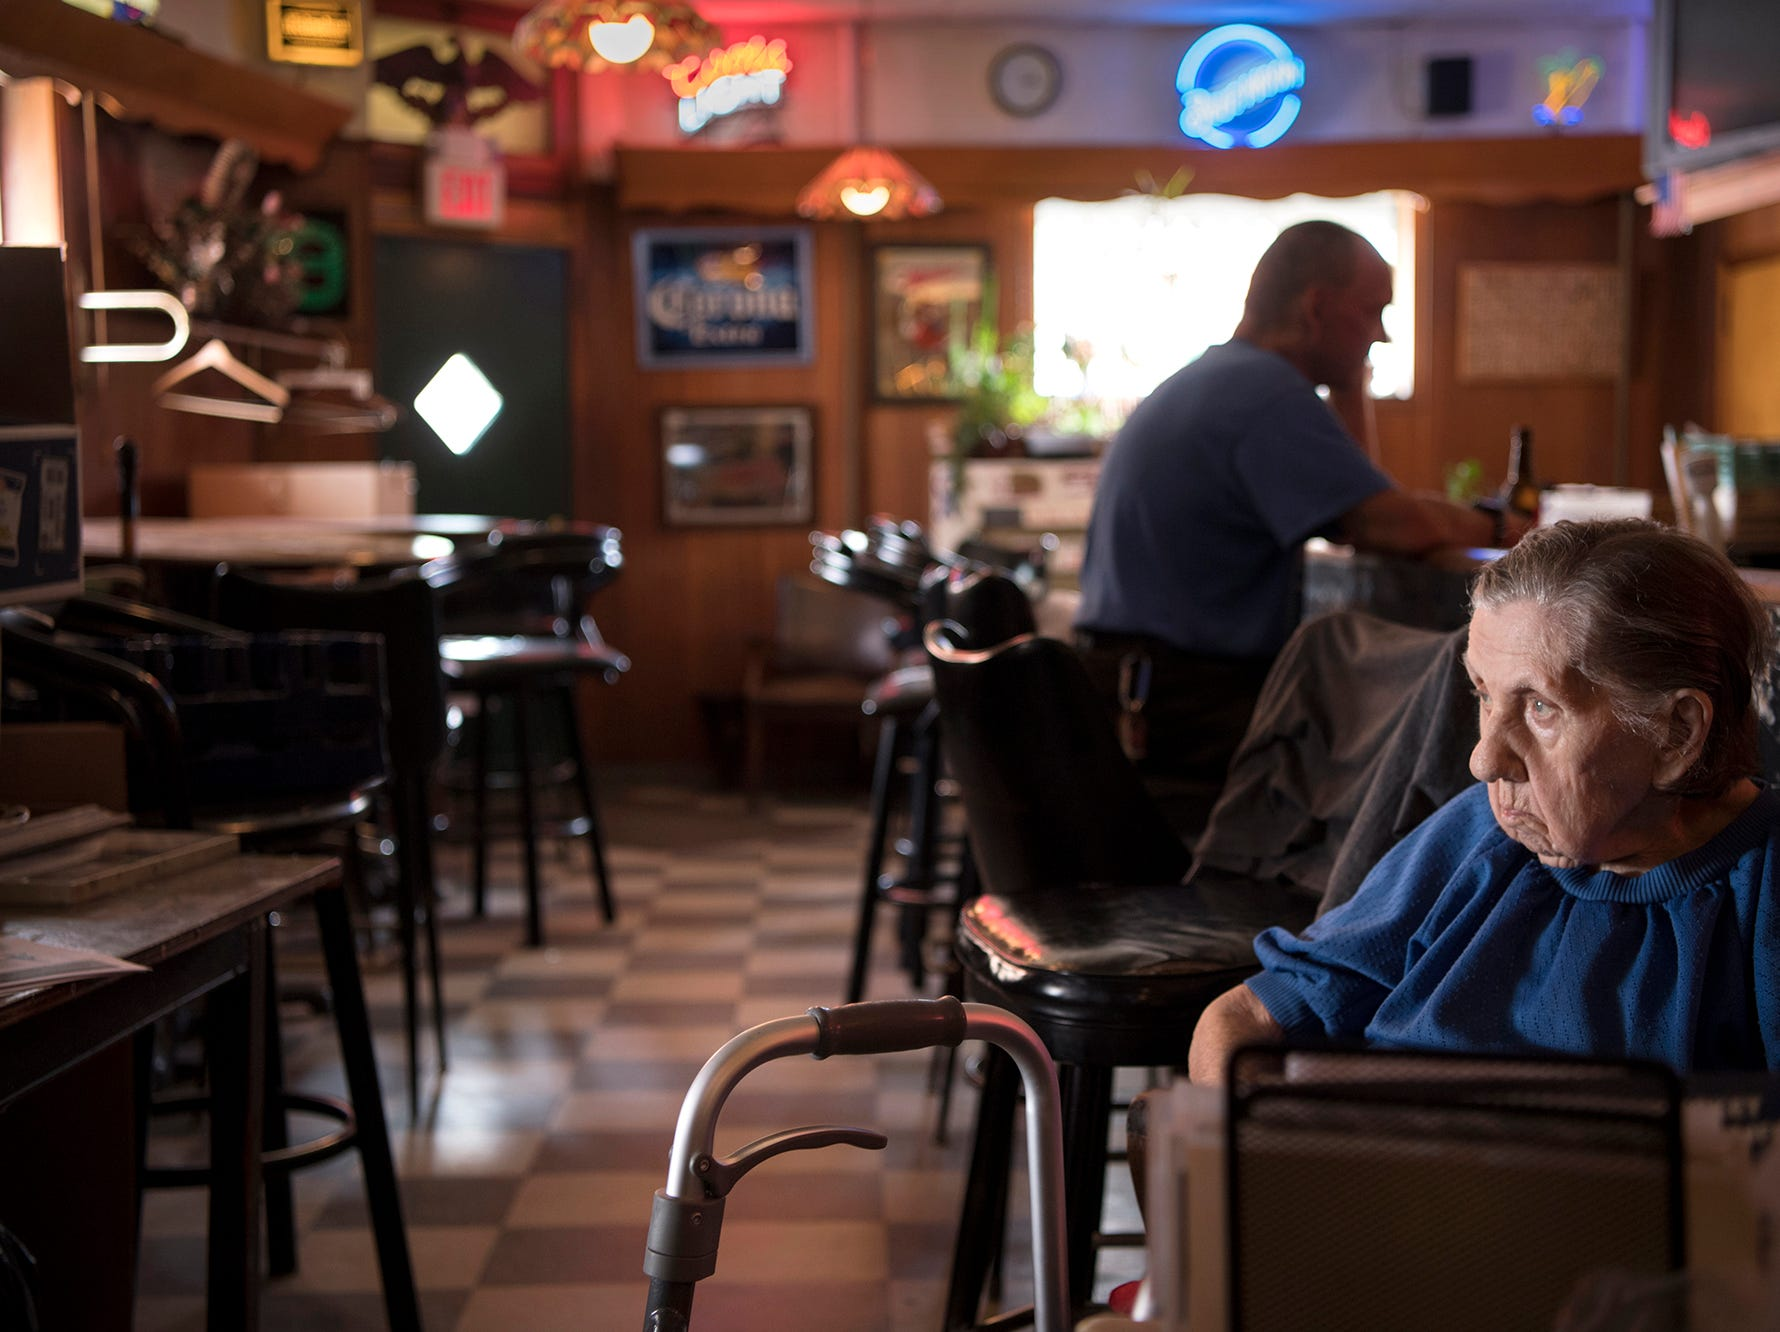 Emily Penkalski, 96, has owned and run Johnny's for 65 years.  Emily in her bar on Tuesday, July 17, 2018. KARASPOY2018